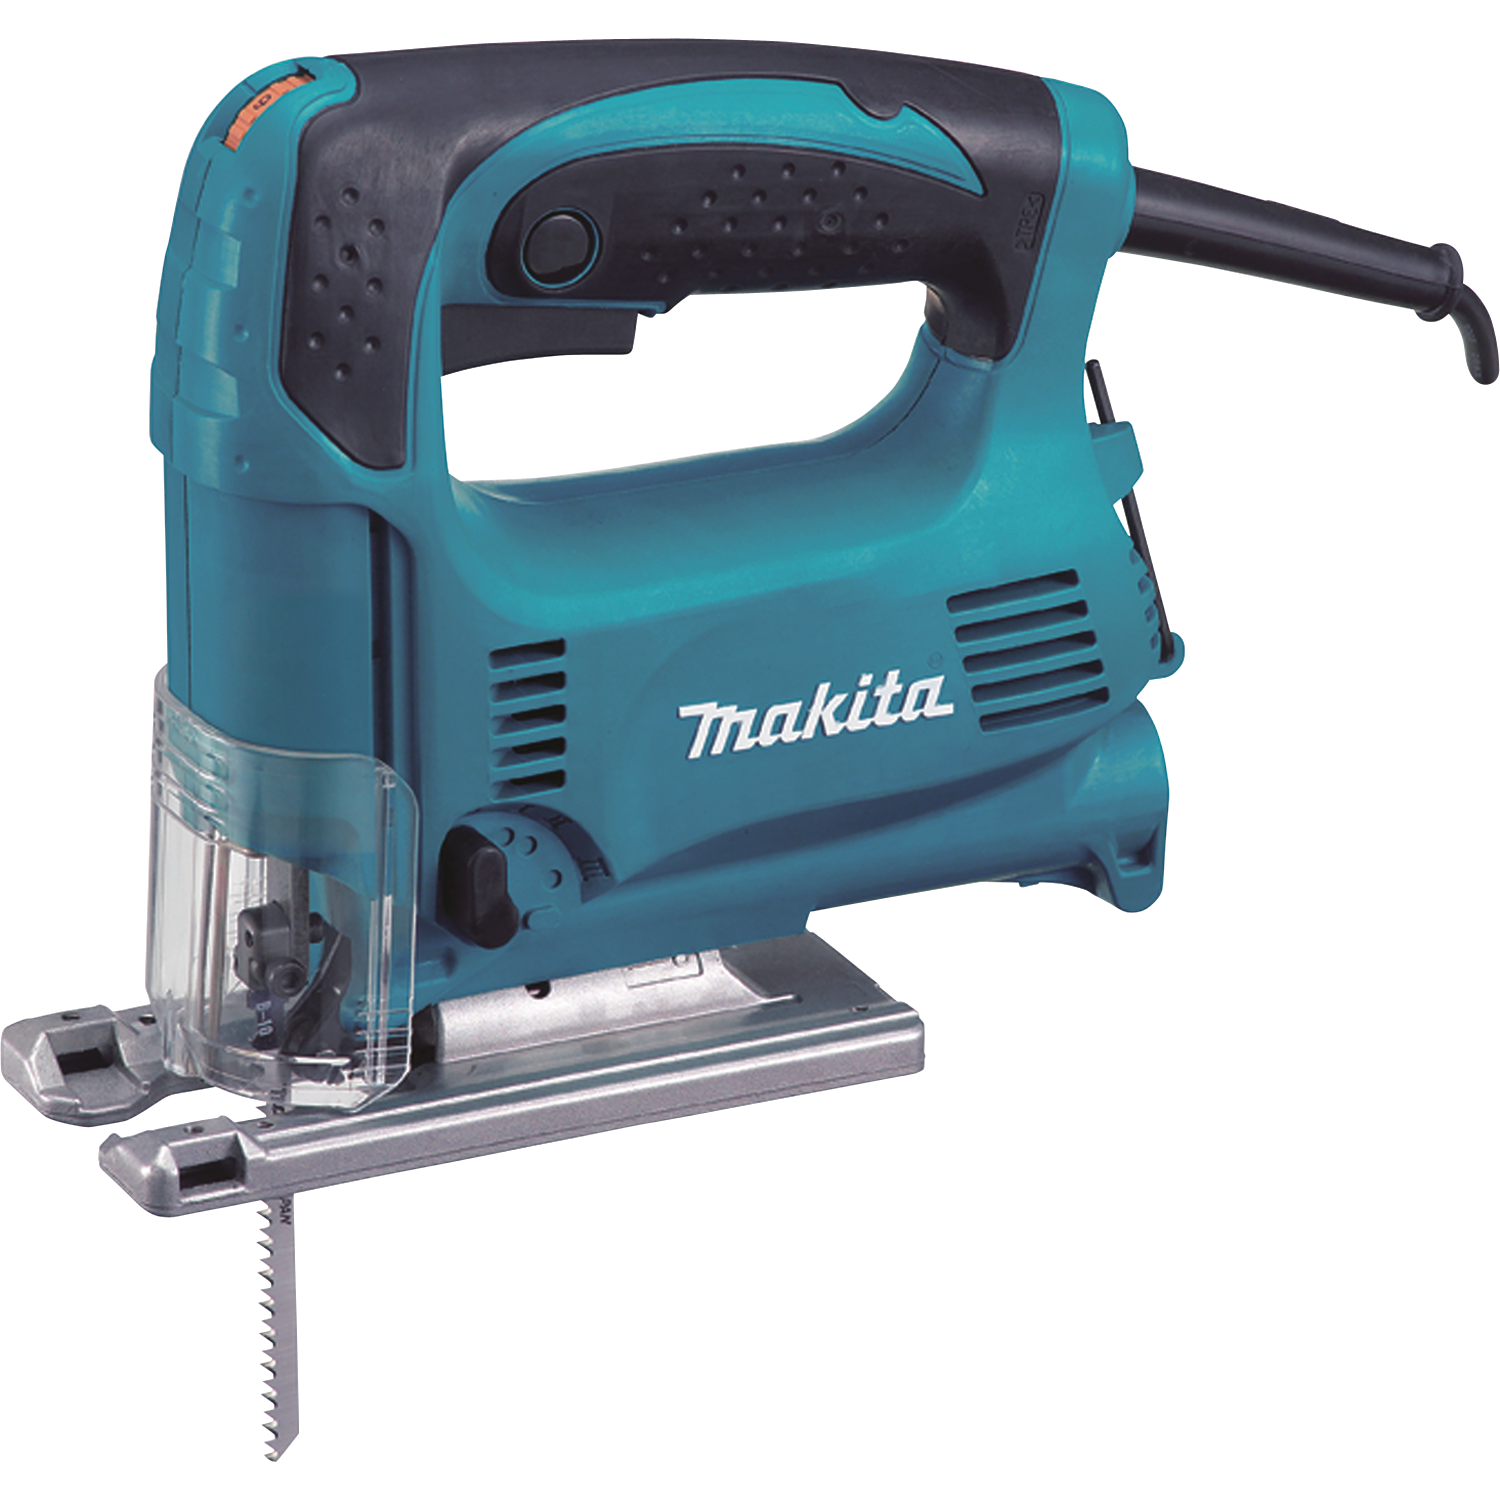 Makita usa product details 4329k 4329k greentooth Image collections